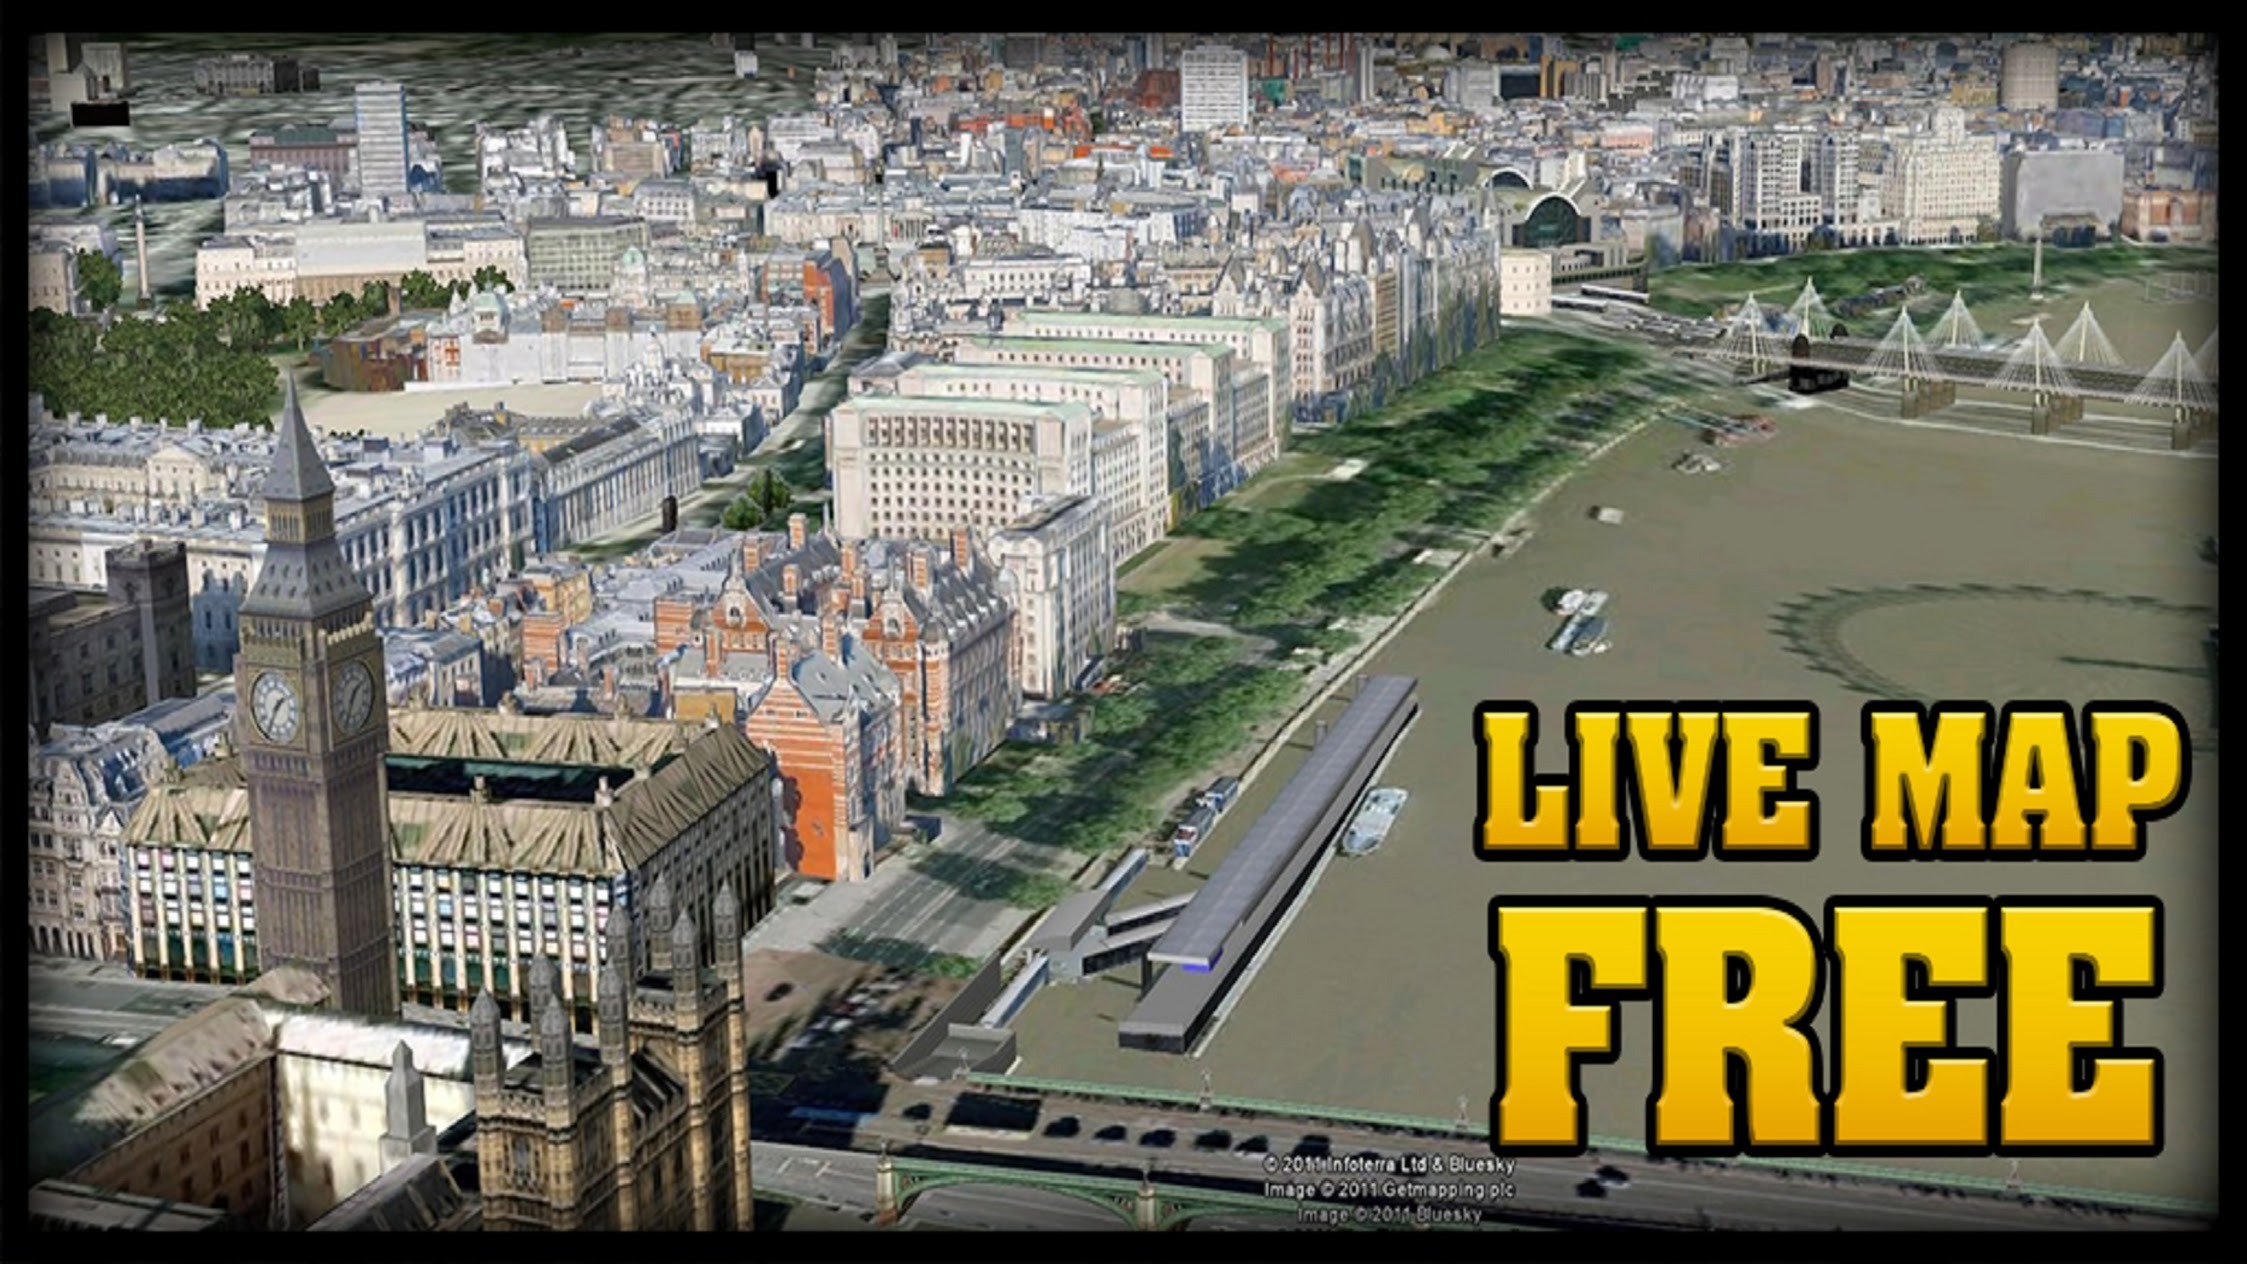 Online Live Maps Street View Dev Android Apps On Google Play - Live map online